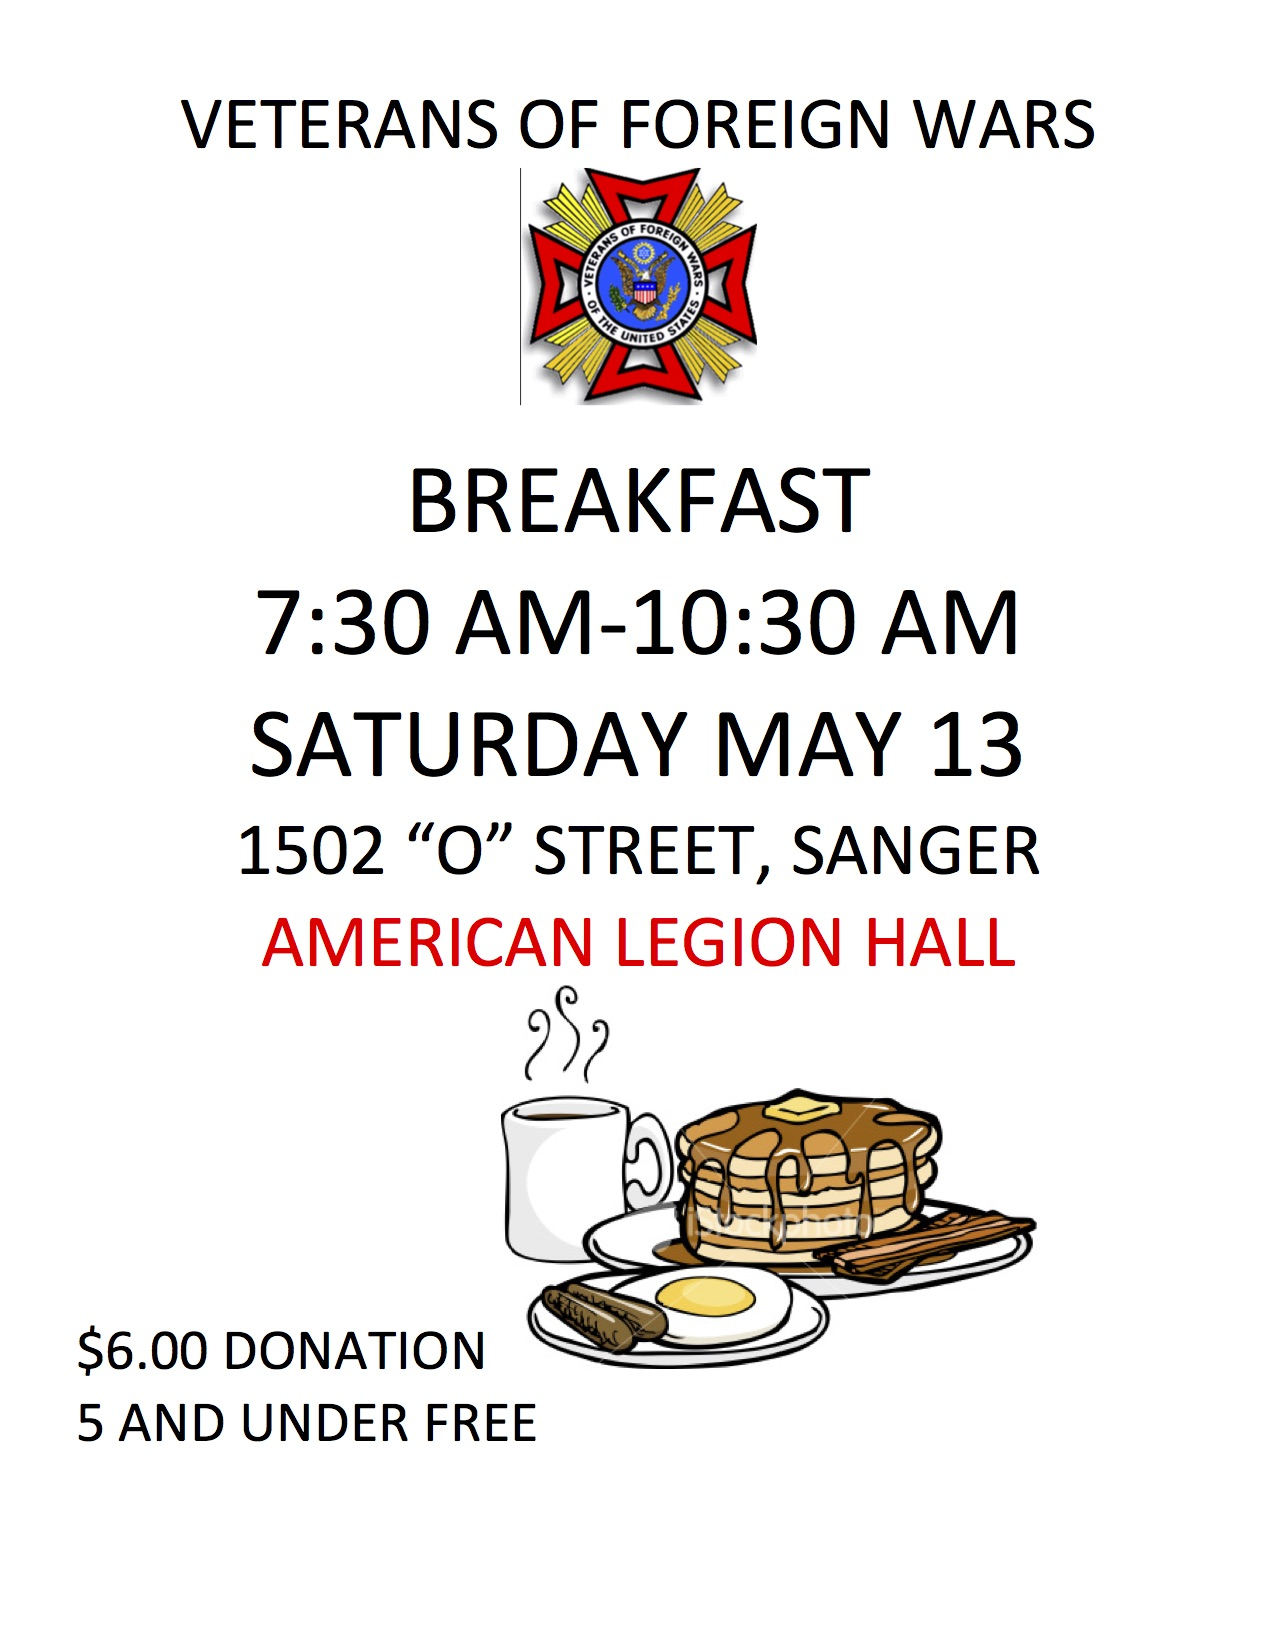 Veterans of foreign wars breakfast the sanger scene for American legion donation letter